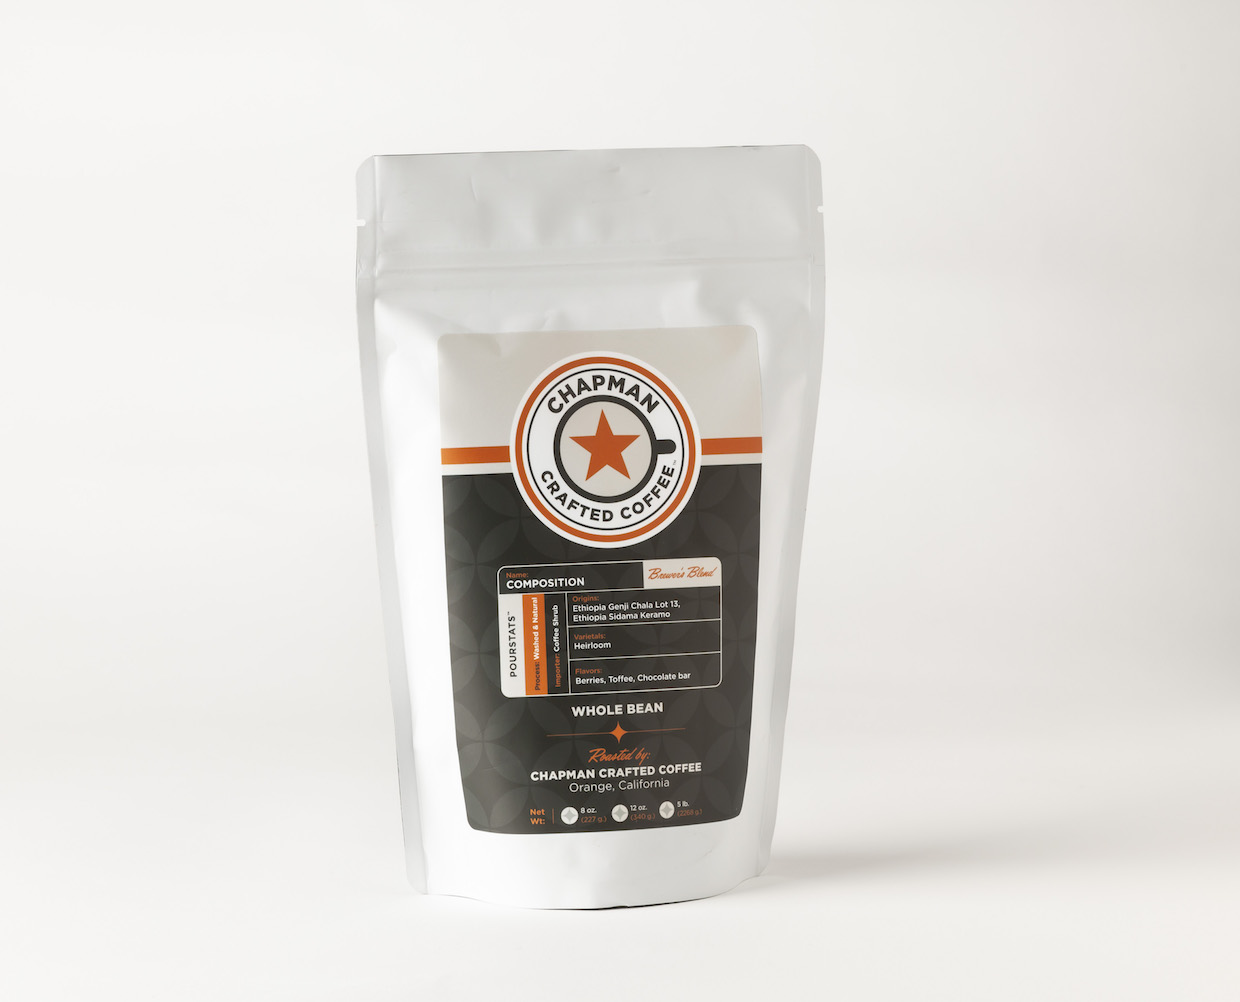 Chapman Crafted Coffee blend